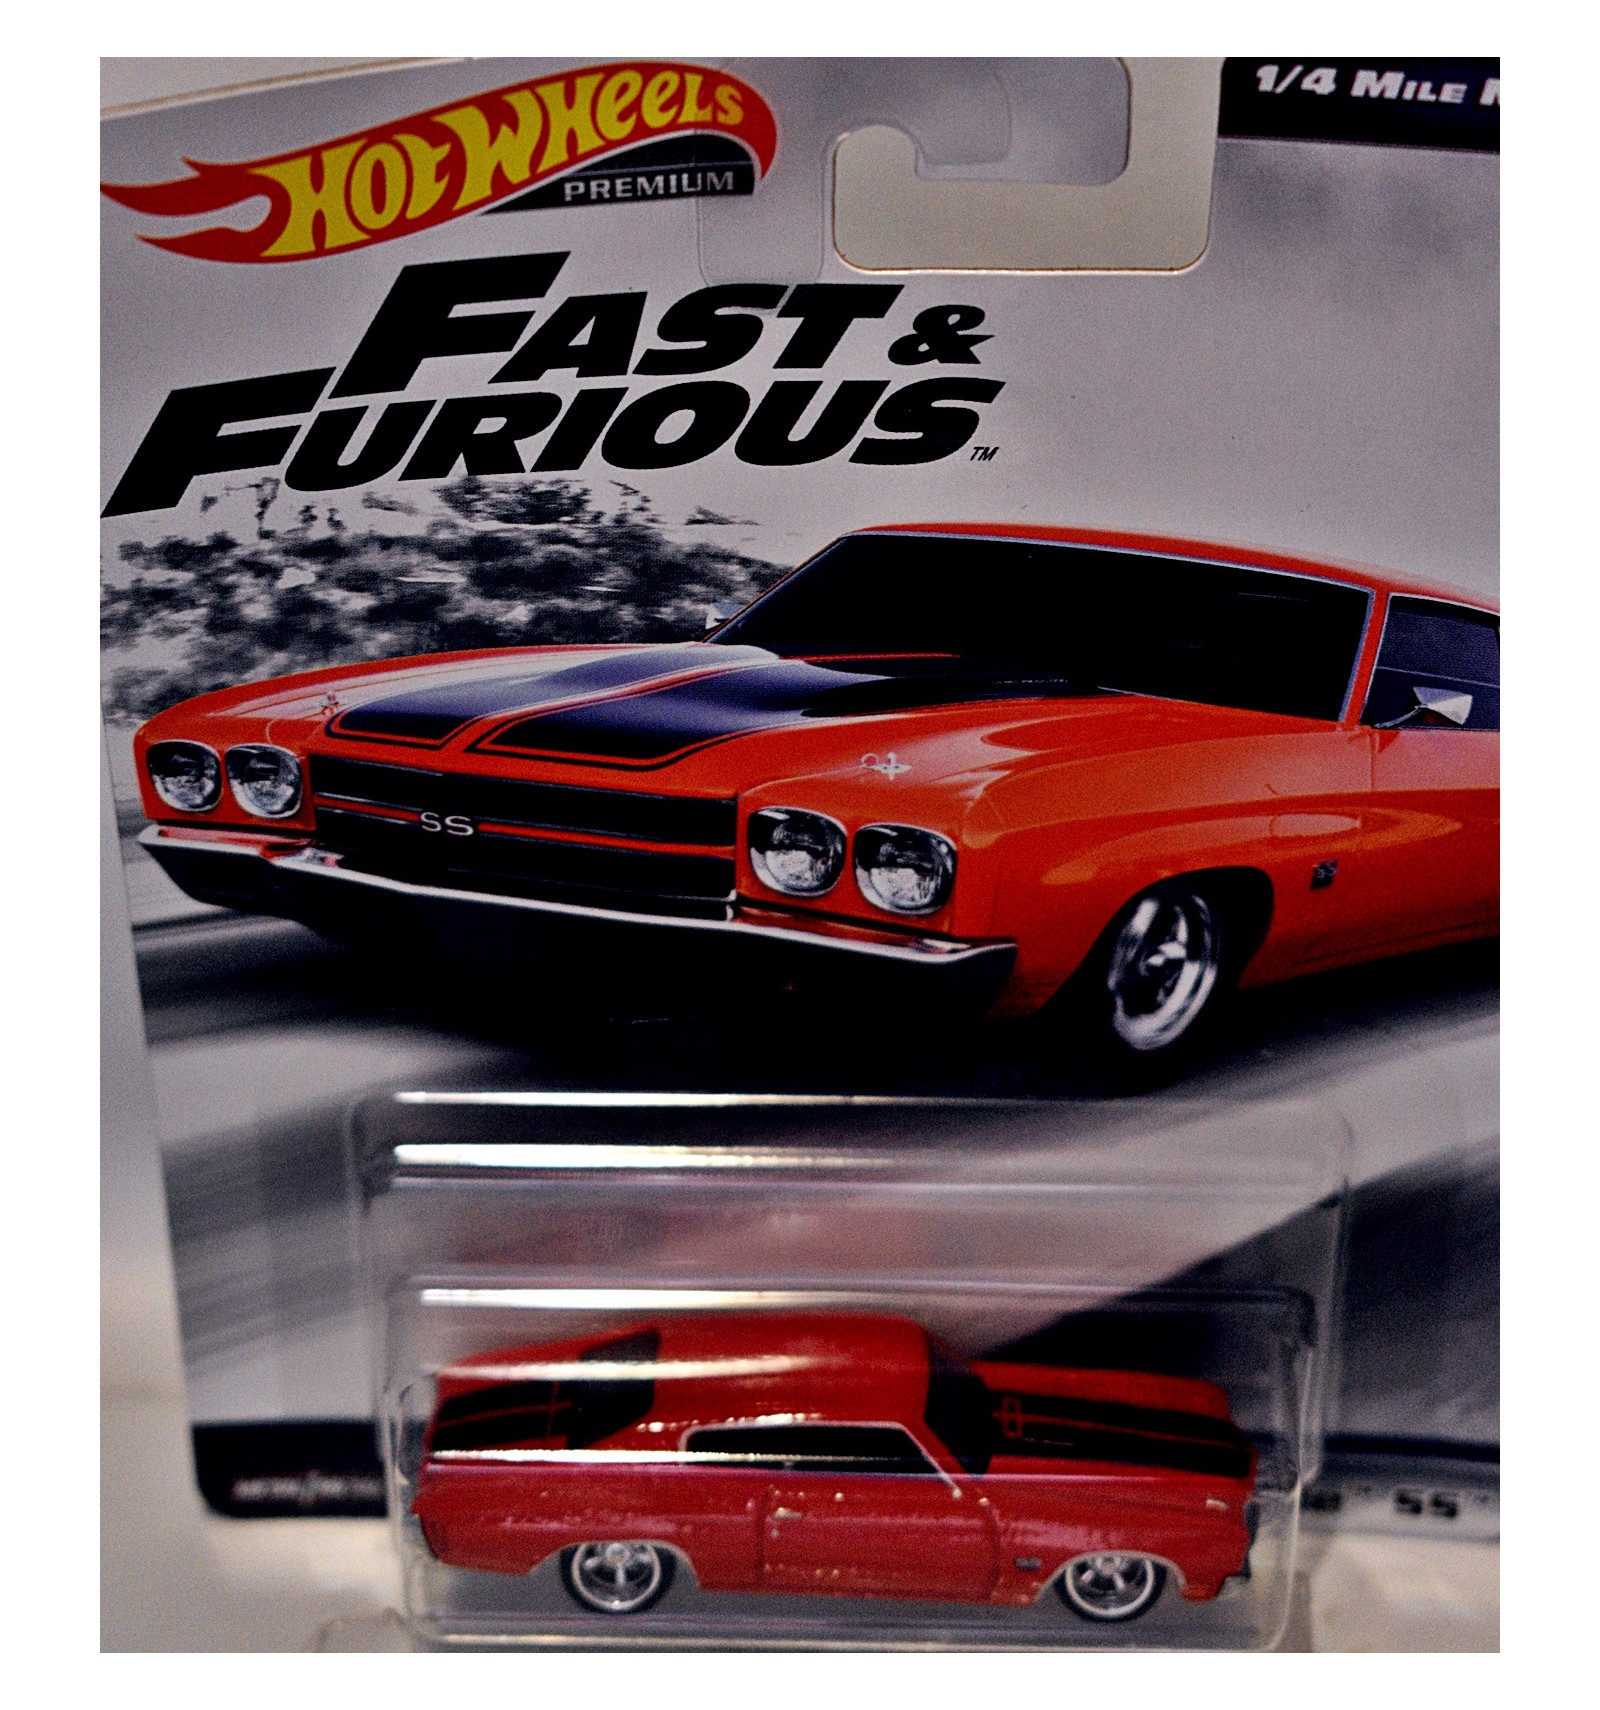 Hot Wheels Fast And Furious 1970 Chevrolet Chevelle SS 1//4 Mile Muscle